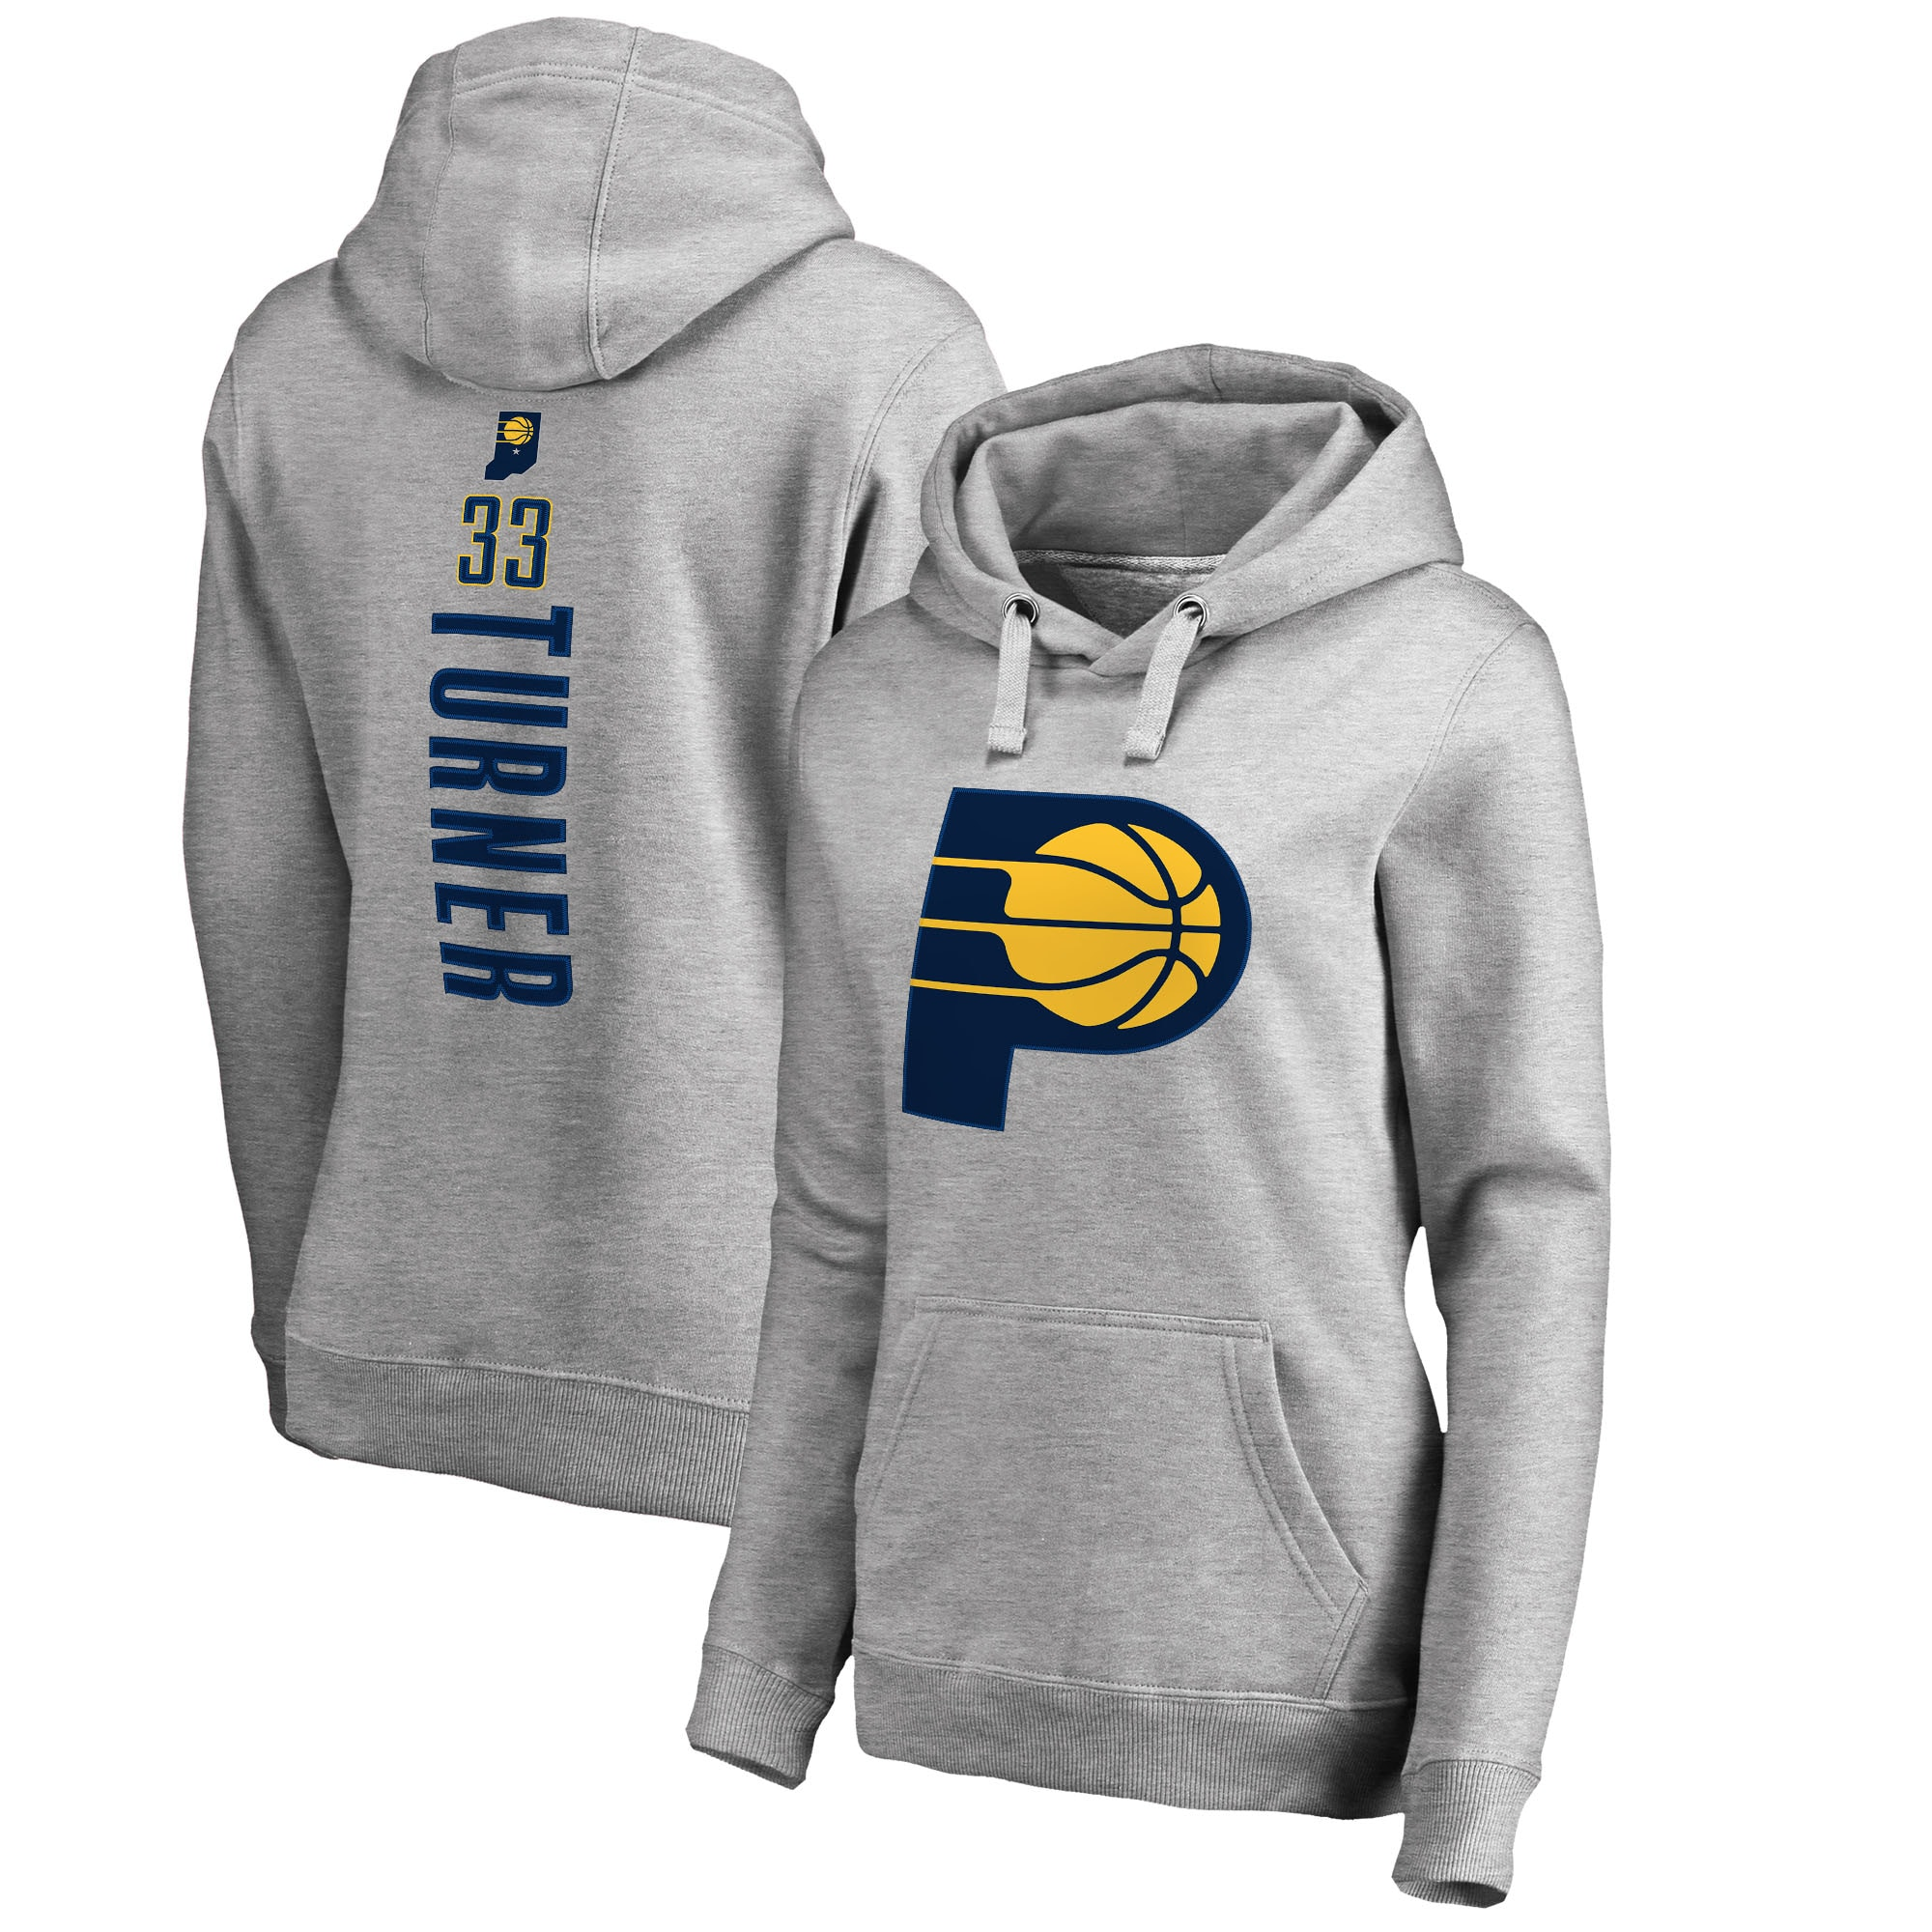 Myles Turner Indiana Pacers Fanatics Branded Women's Backer Name and Number Pullover Hoodie - Heathered Gray